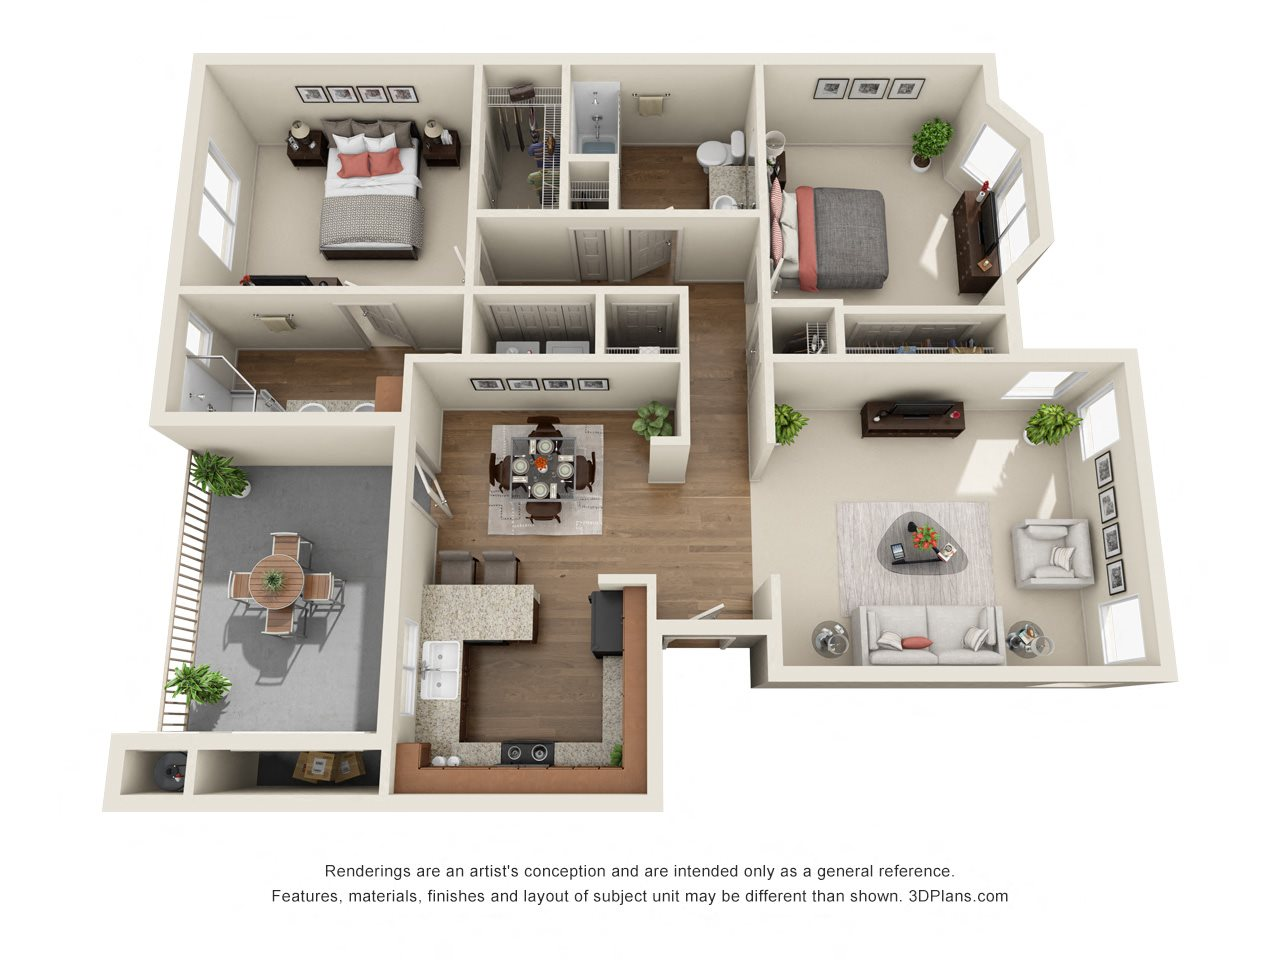 2 Bedroom, 2 Bath, Upstairs Floor Plan 4